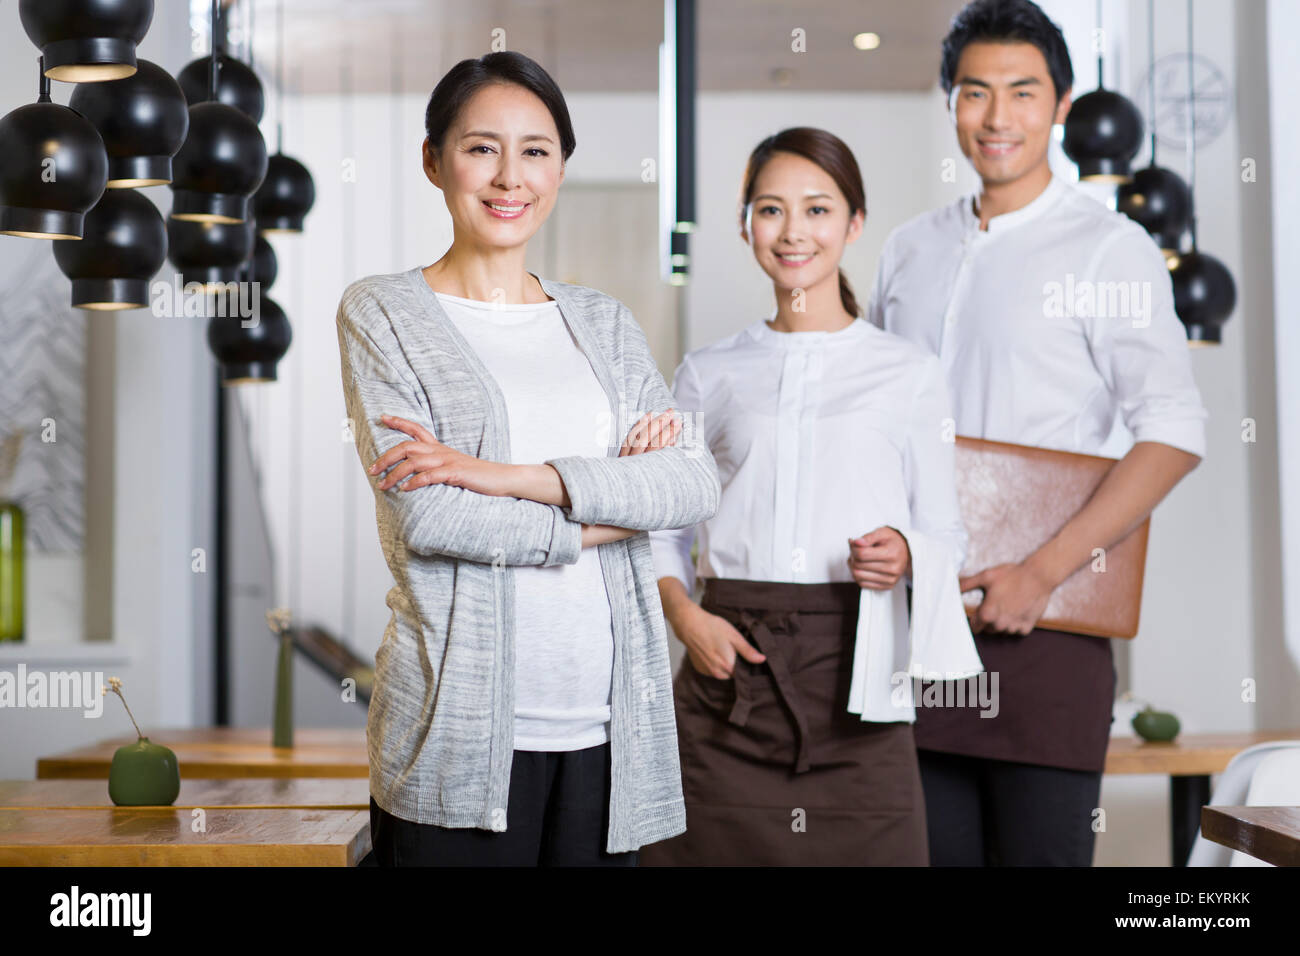 Restaurant owner and wait staff - Stock Image